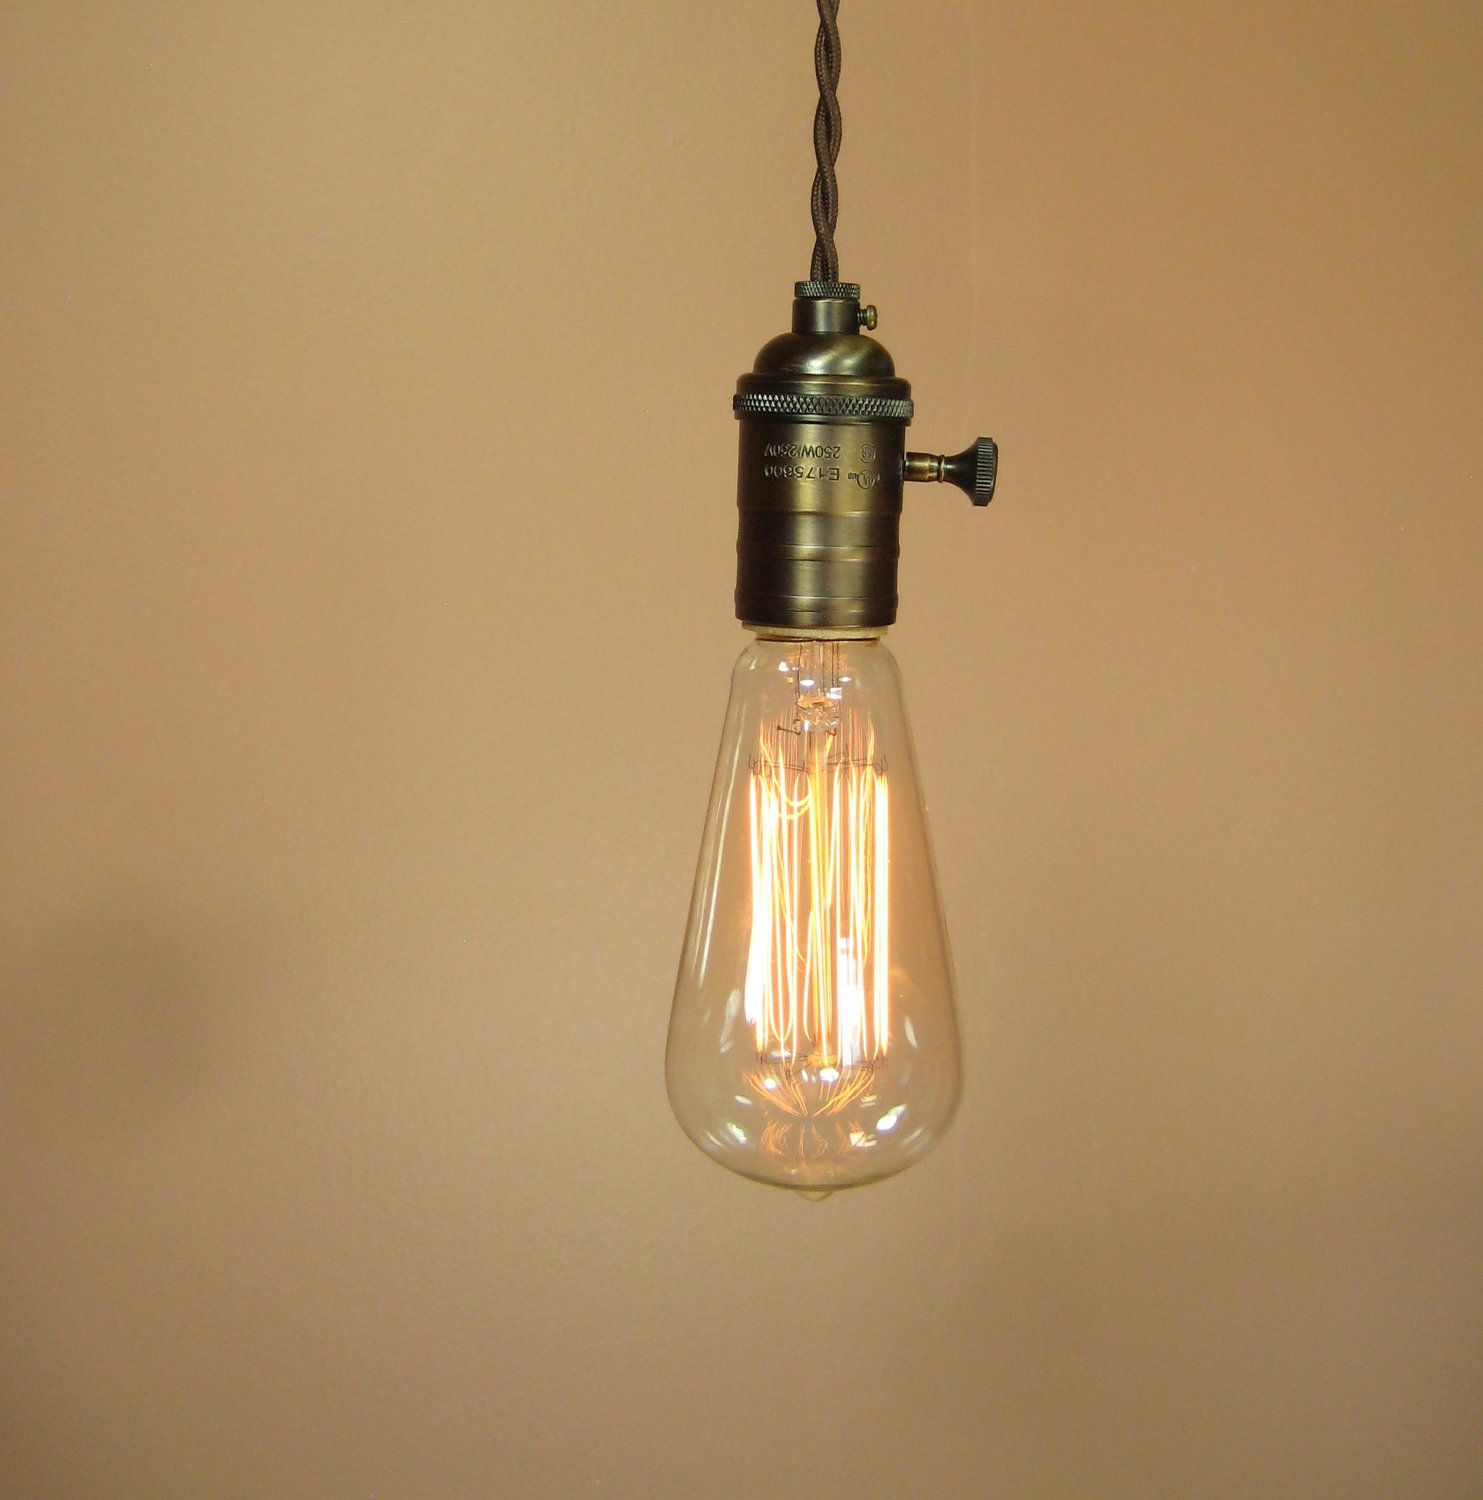 product exclusive light fullxfull ceiling bulb pendant natural industrial il wood unique lamp wooden style scandinavian